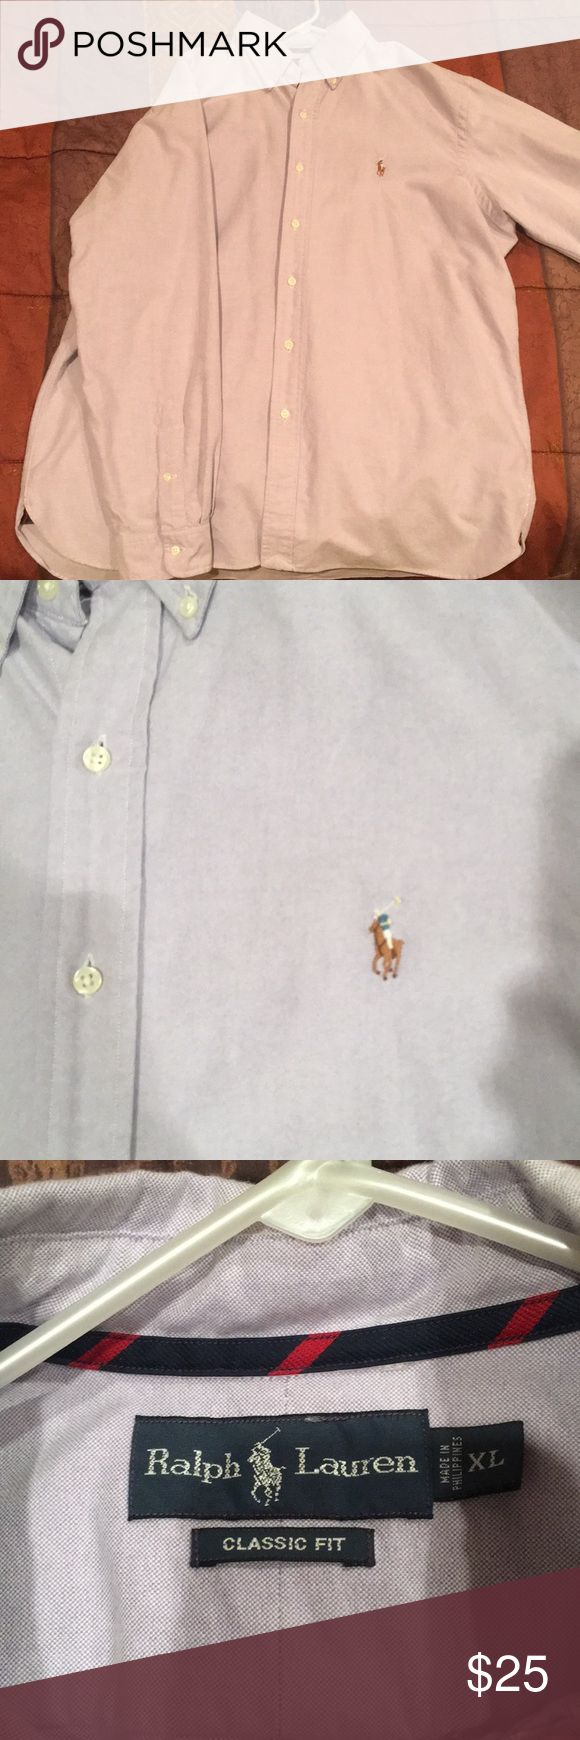 Polo by Ralph Lauren button down shirt For sale is a light purple, classic fit Ralph Lauren Polo button down shirt. This item is in perfect condition has only been worn a handful of times. Polo by Ralph Lauren Shirts Casual Button Down Shirts